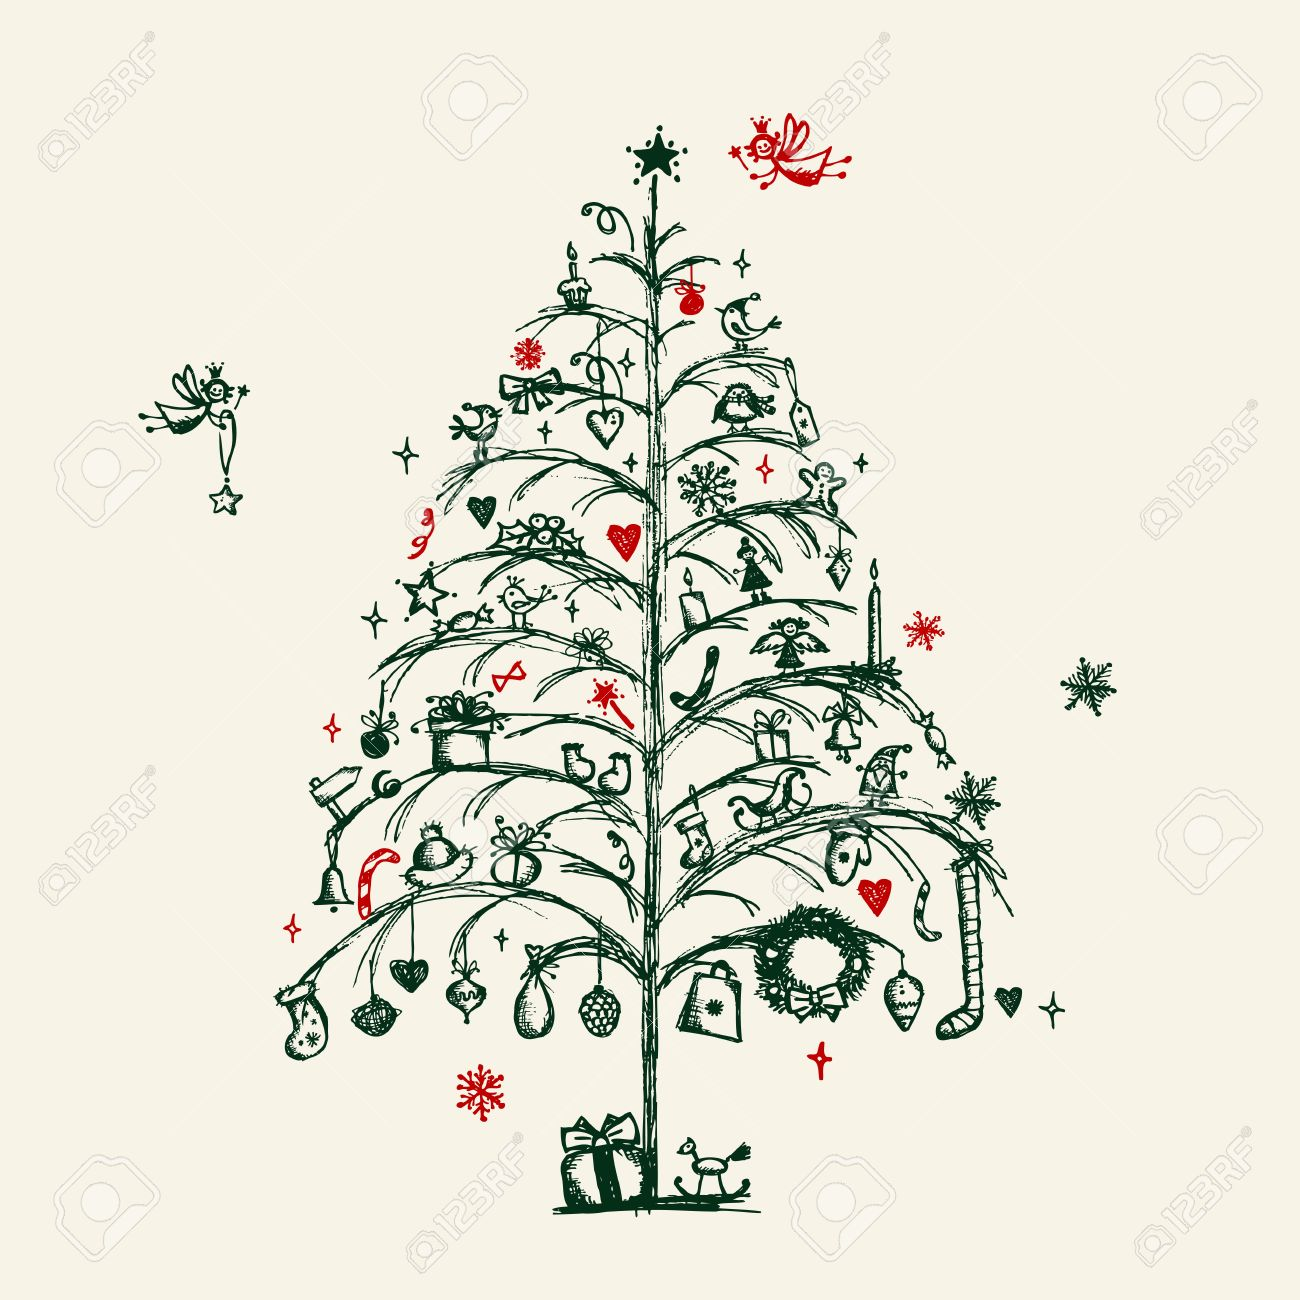 Christmas tree sketch for your design stock vector 11476188